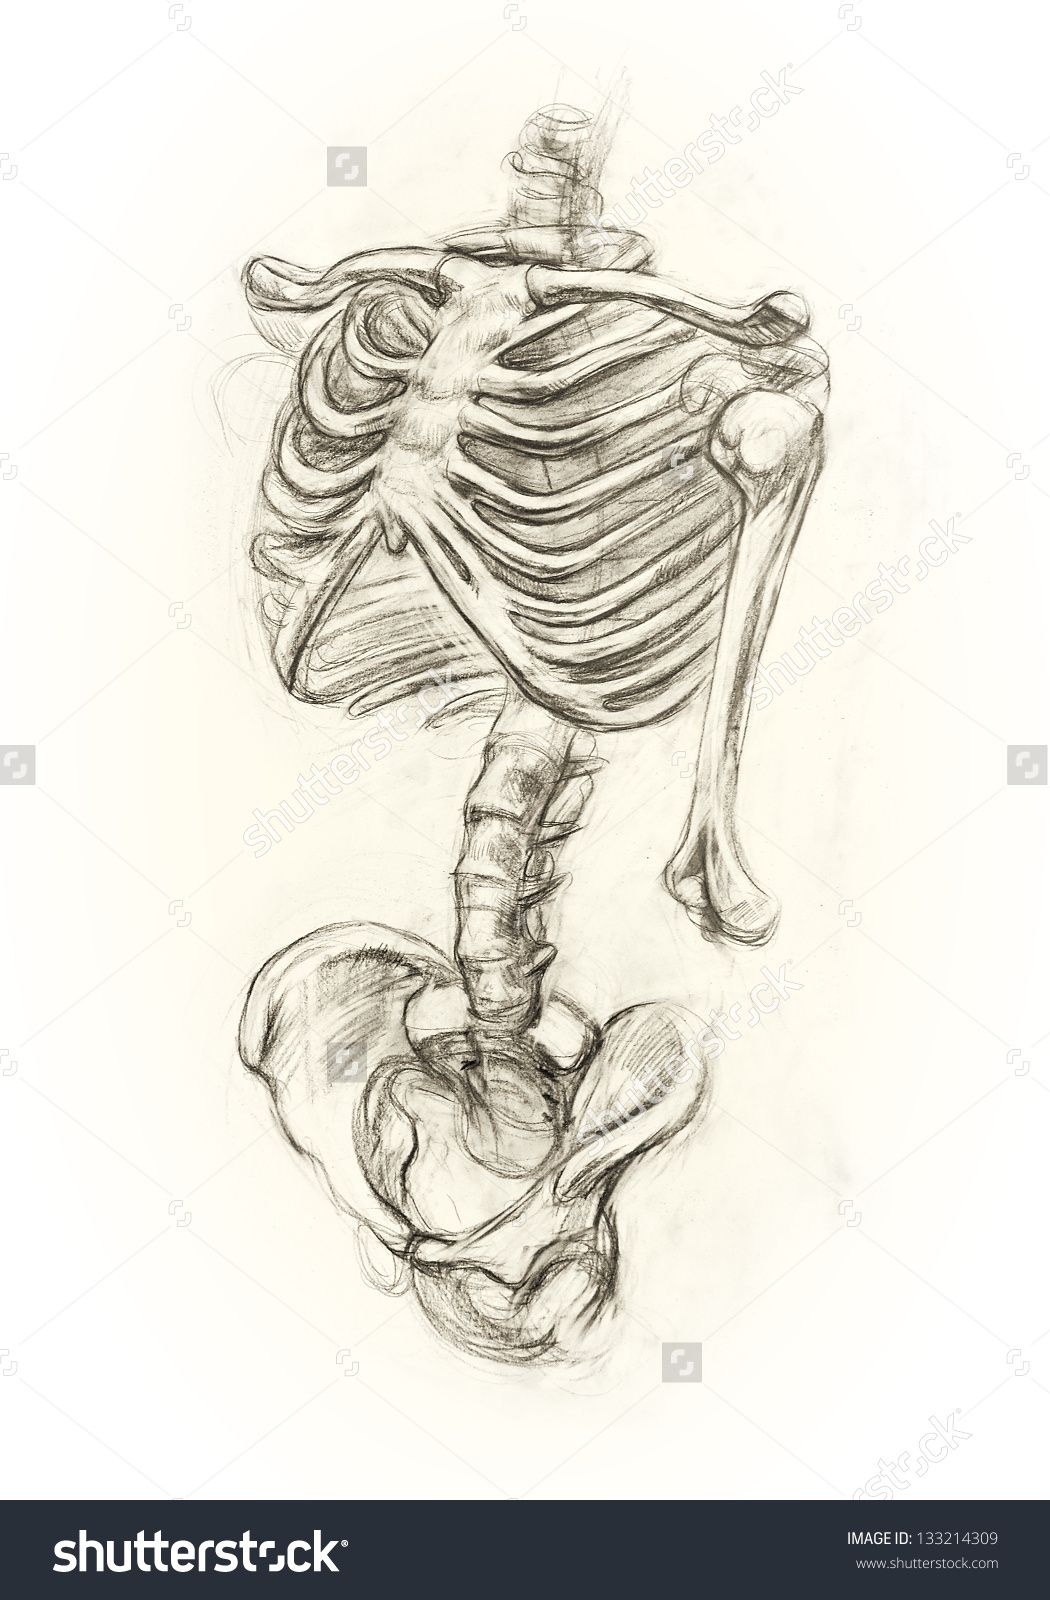 Uncategorized Skeletons Drawings stock photo learning drawing skeleton hand in pencil in